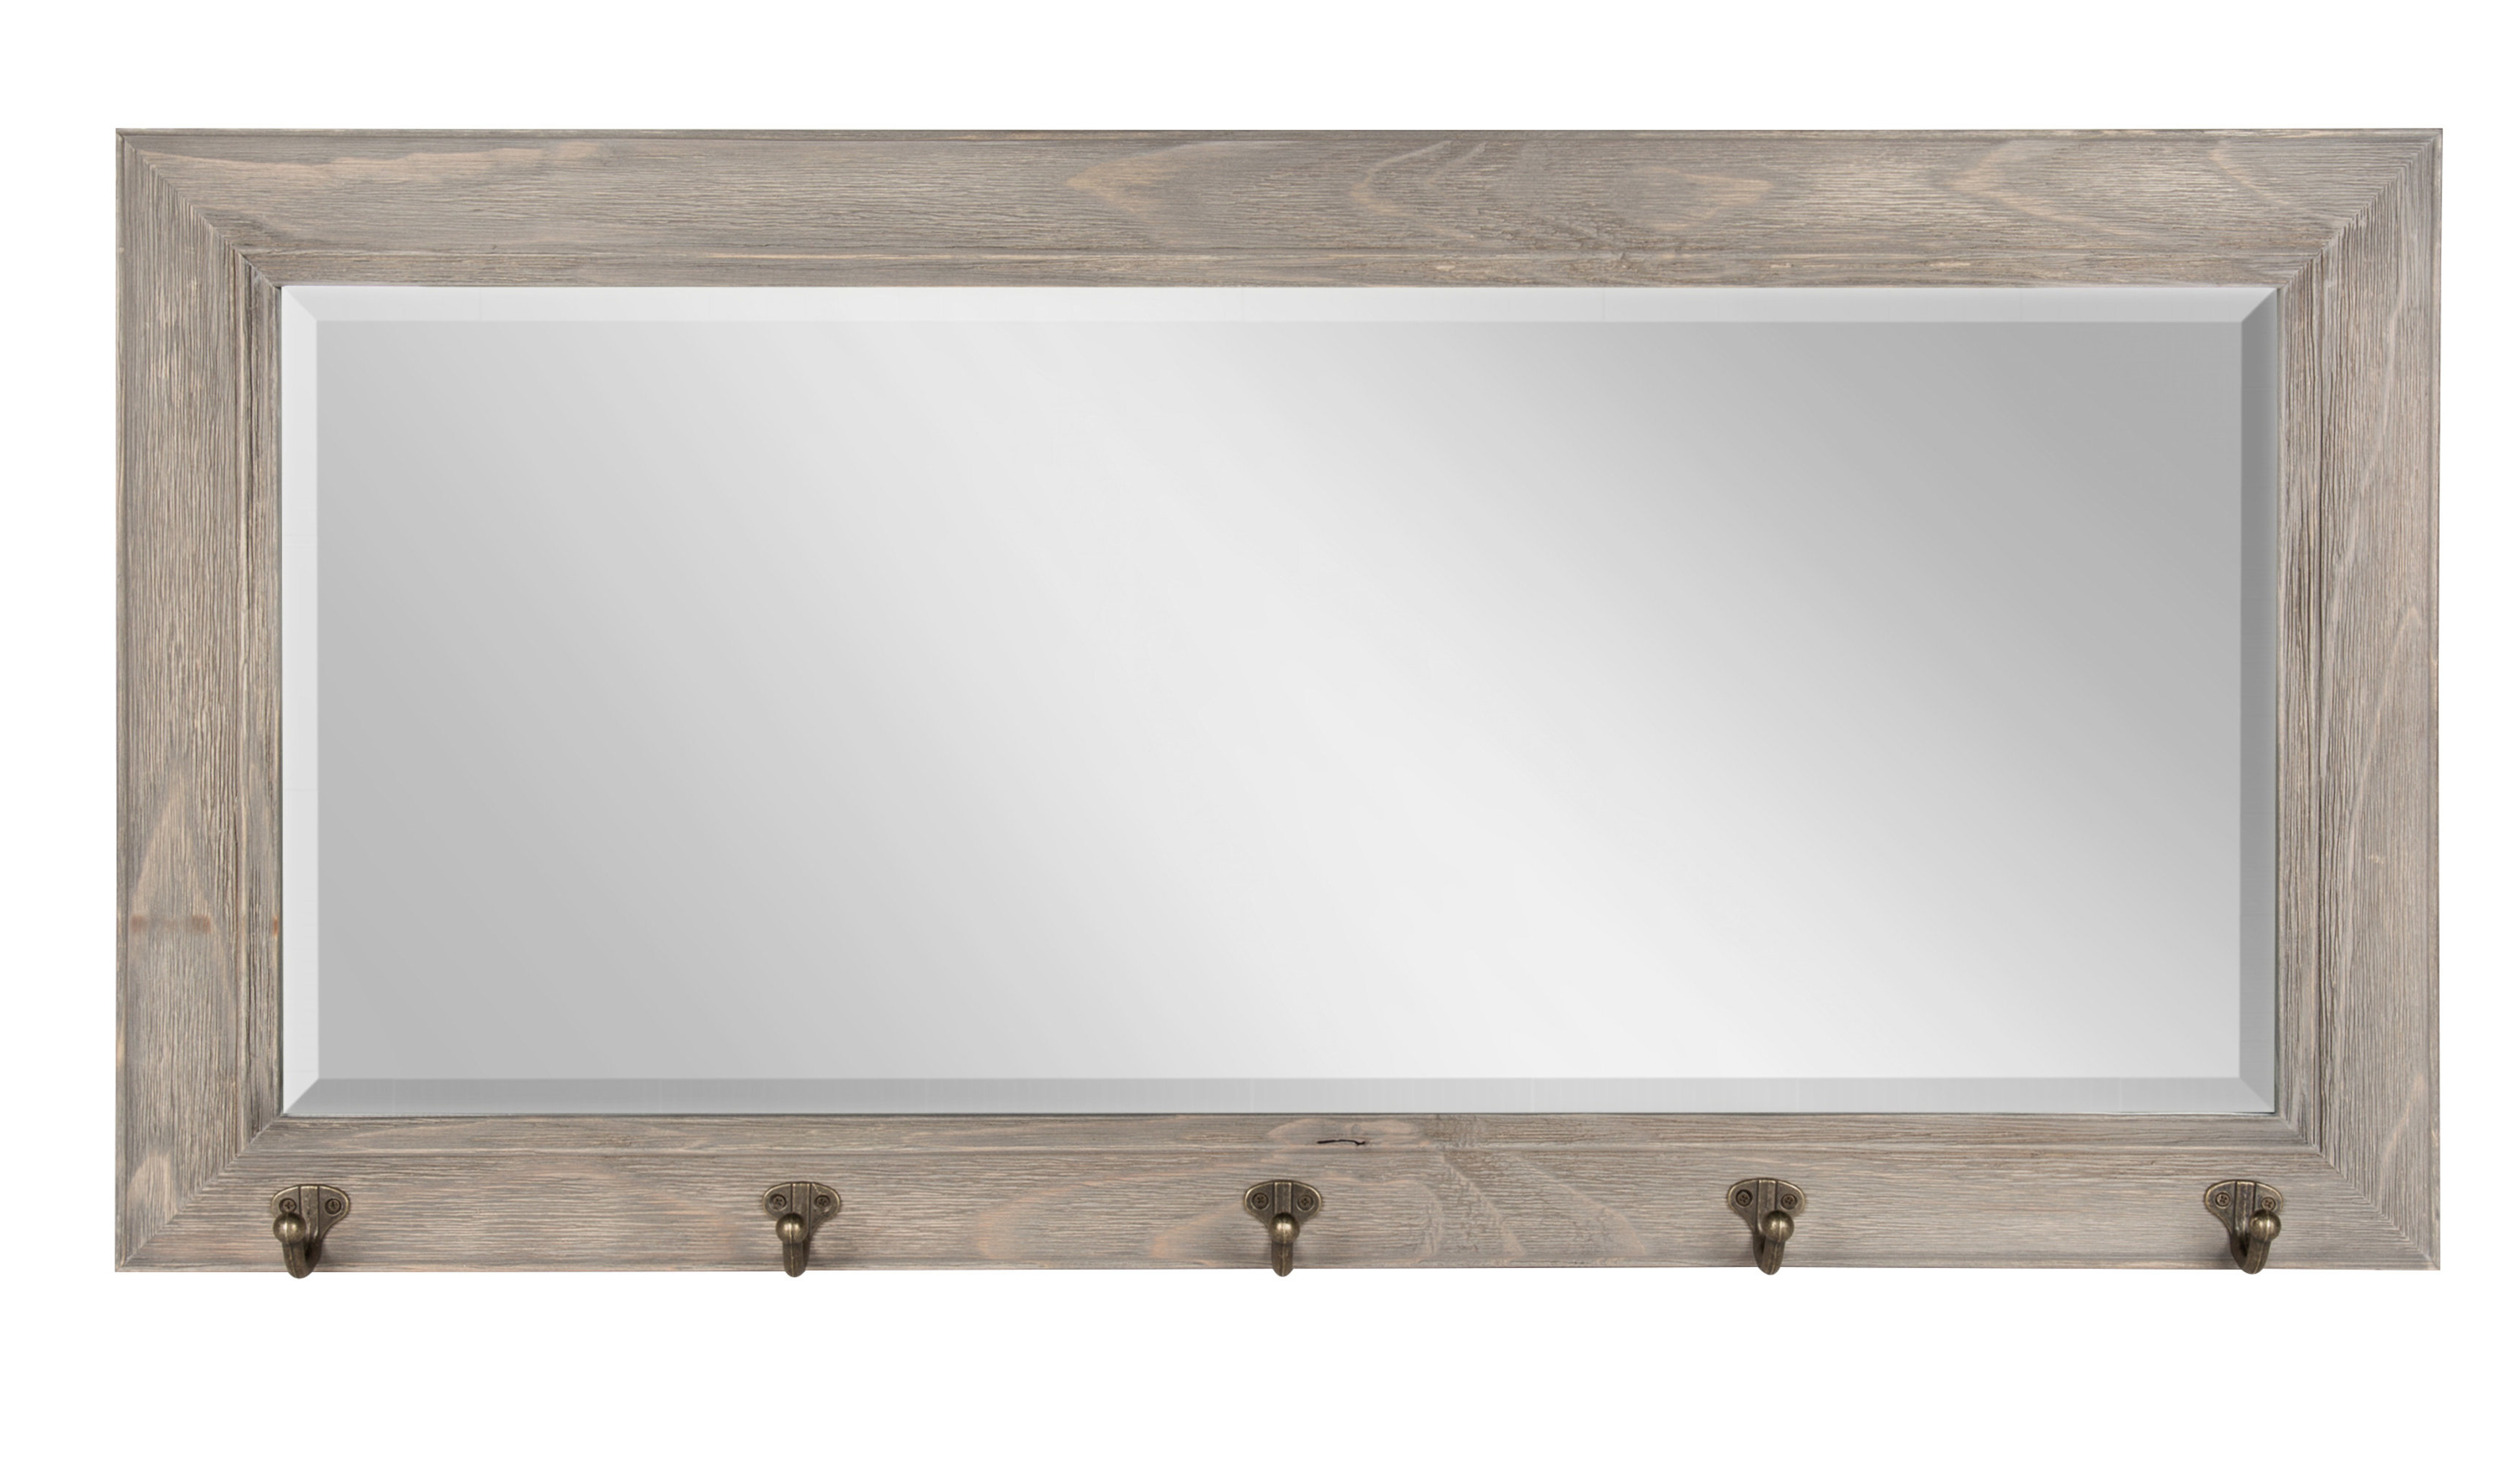 Longwood Rustic Beveled Accent Mirrors Throughout Newest Teo Pub Accent Mirror (Gallery 13 of 20)